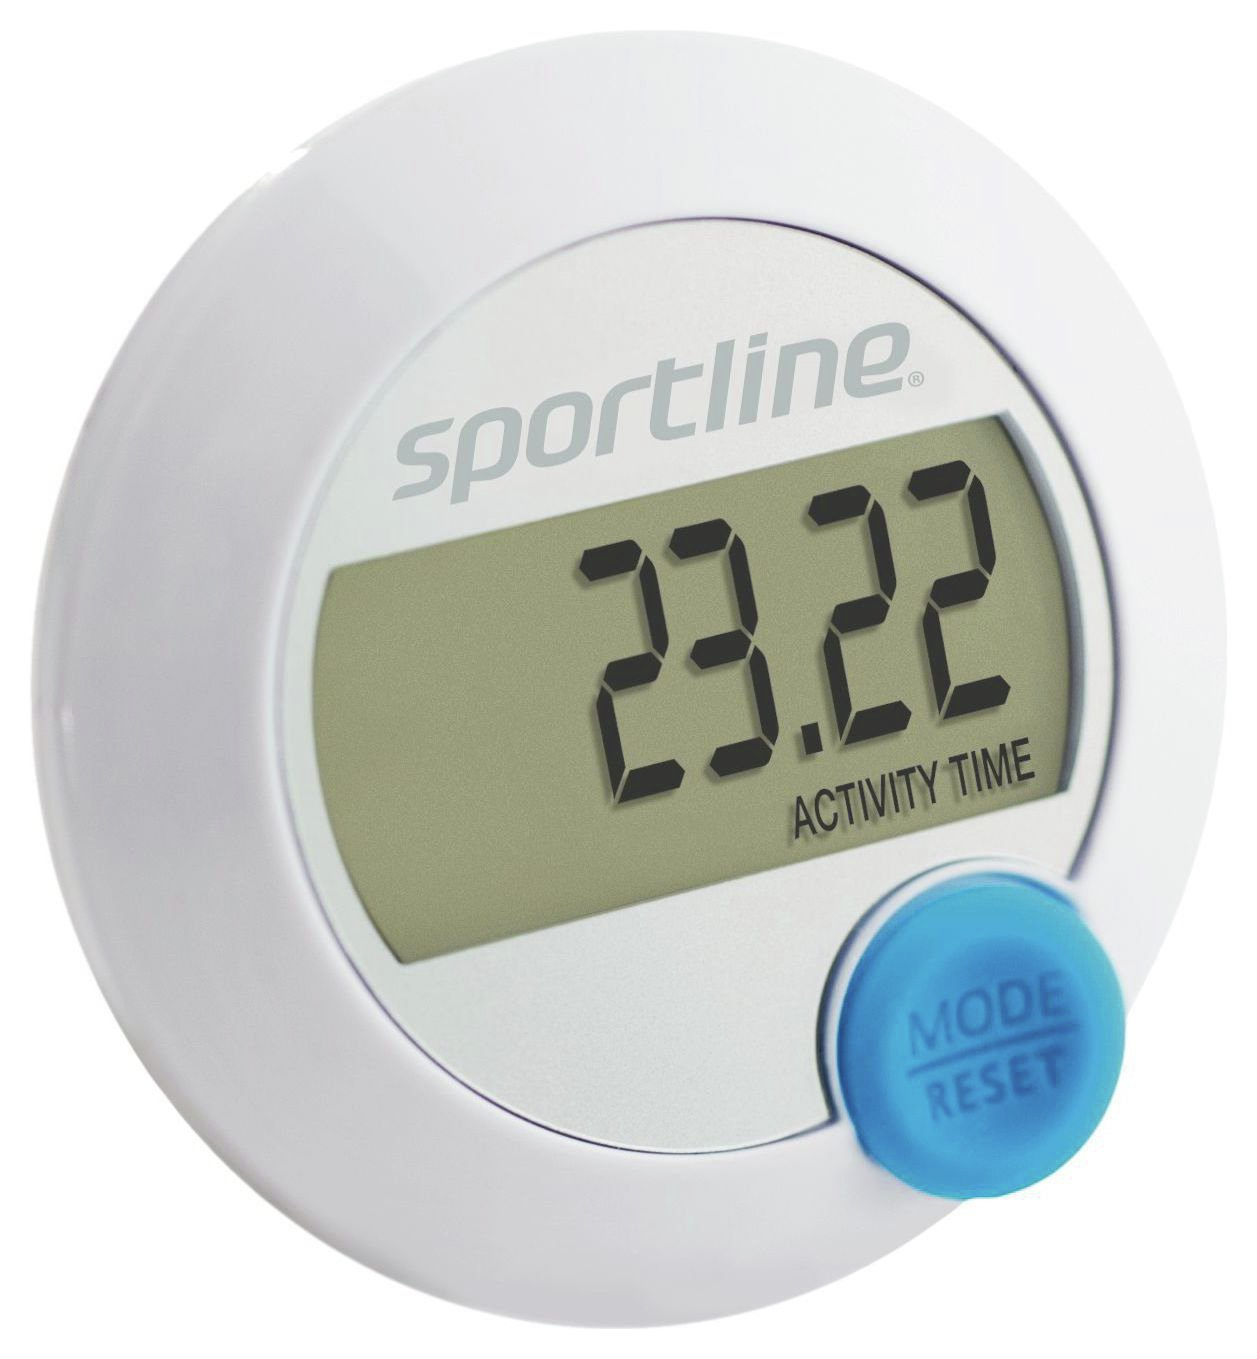 Sportline - Performance Activity Tracker - White lowest price